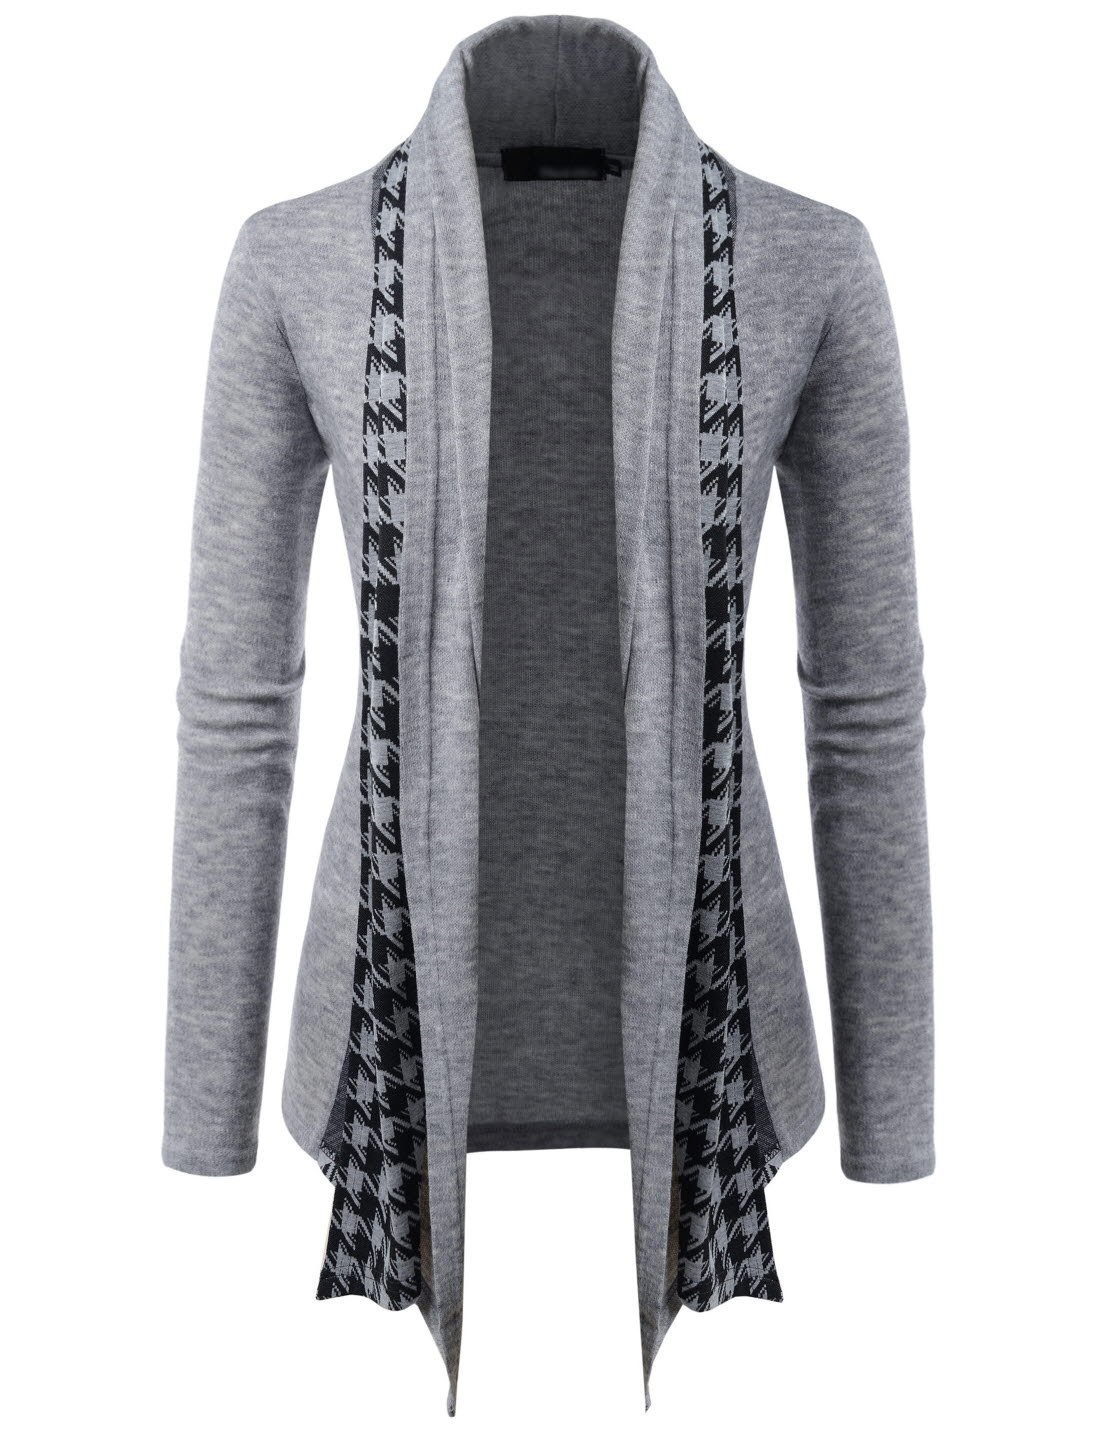 (GD92) Slim Fit Hound tooth Check Open Front Shawl Collar Stylish Wool Cardigan GRAY US L(Tag size 2XL)